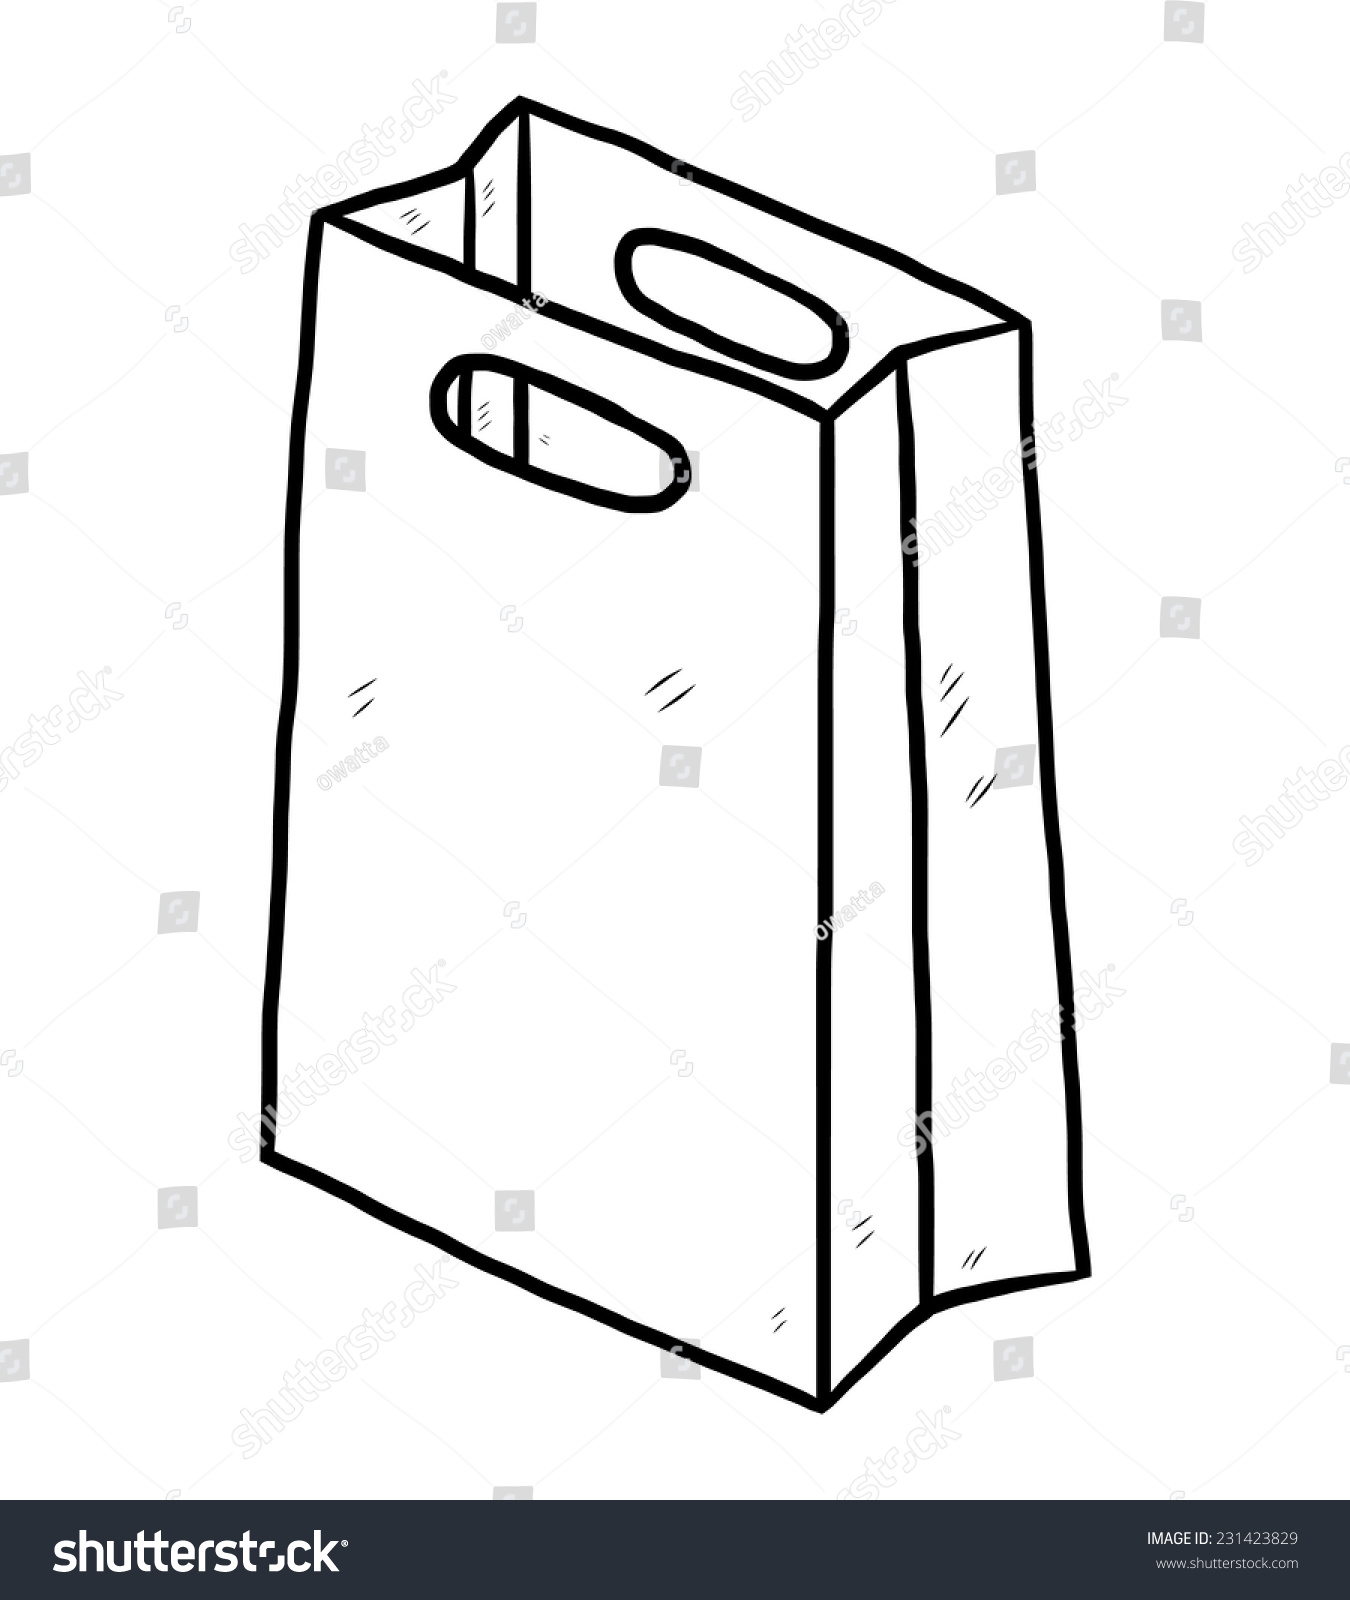 Paper bag sketch - Stock Vector Shopping Paper Bag Cartoon Vector And Illustration Black And White Hand Drawn Sketch Style